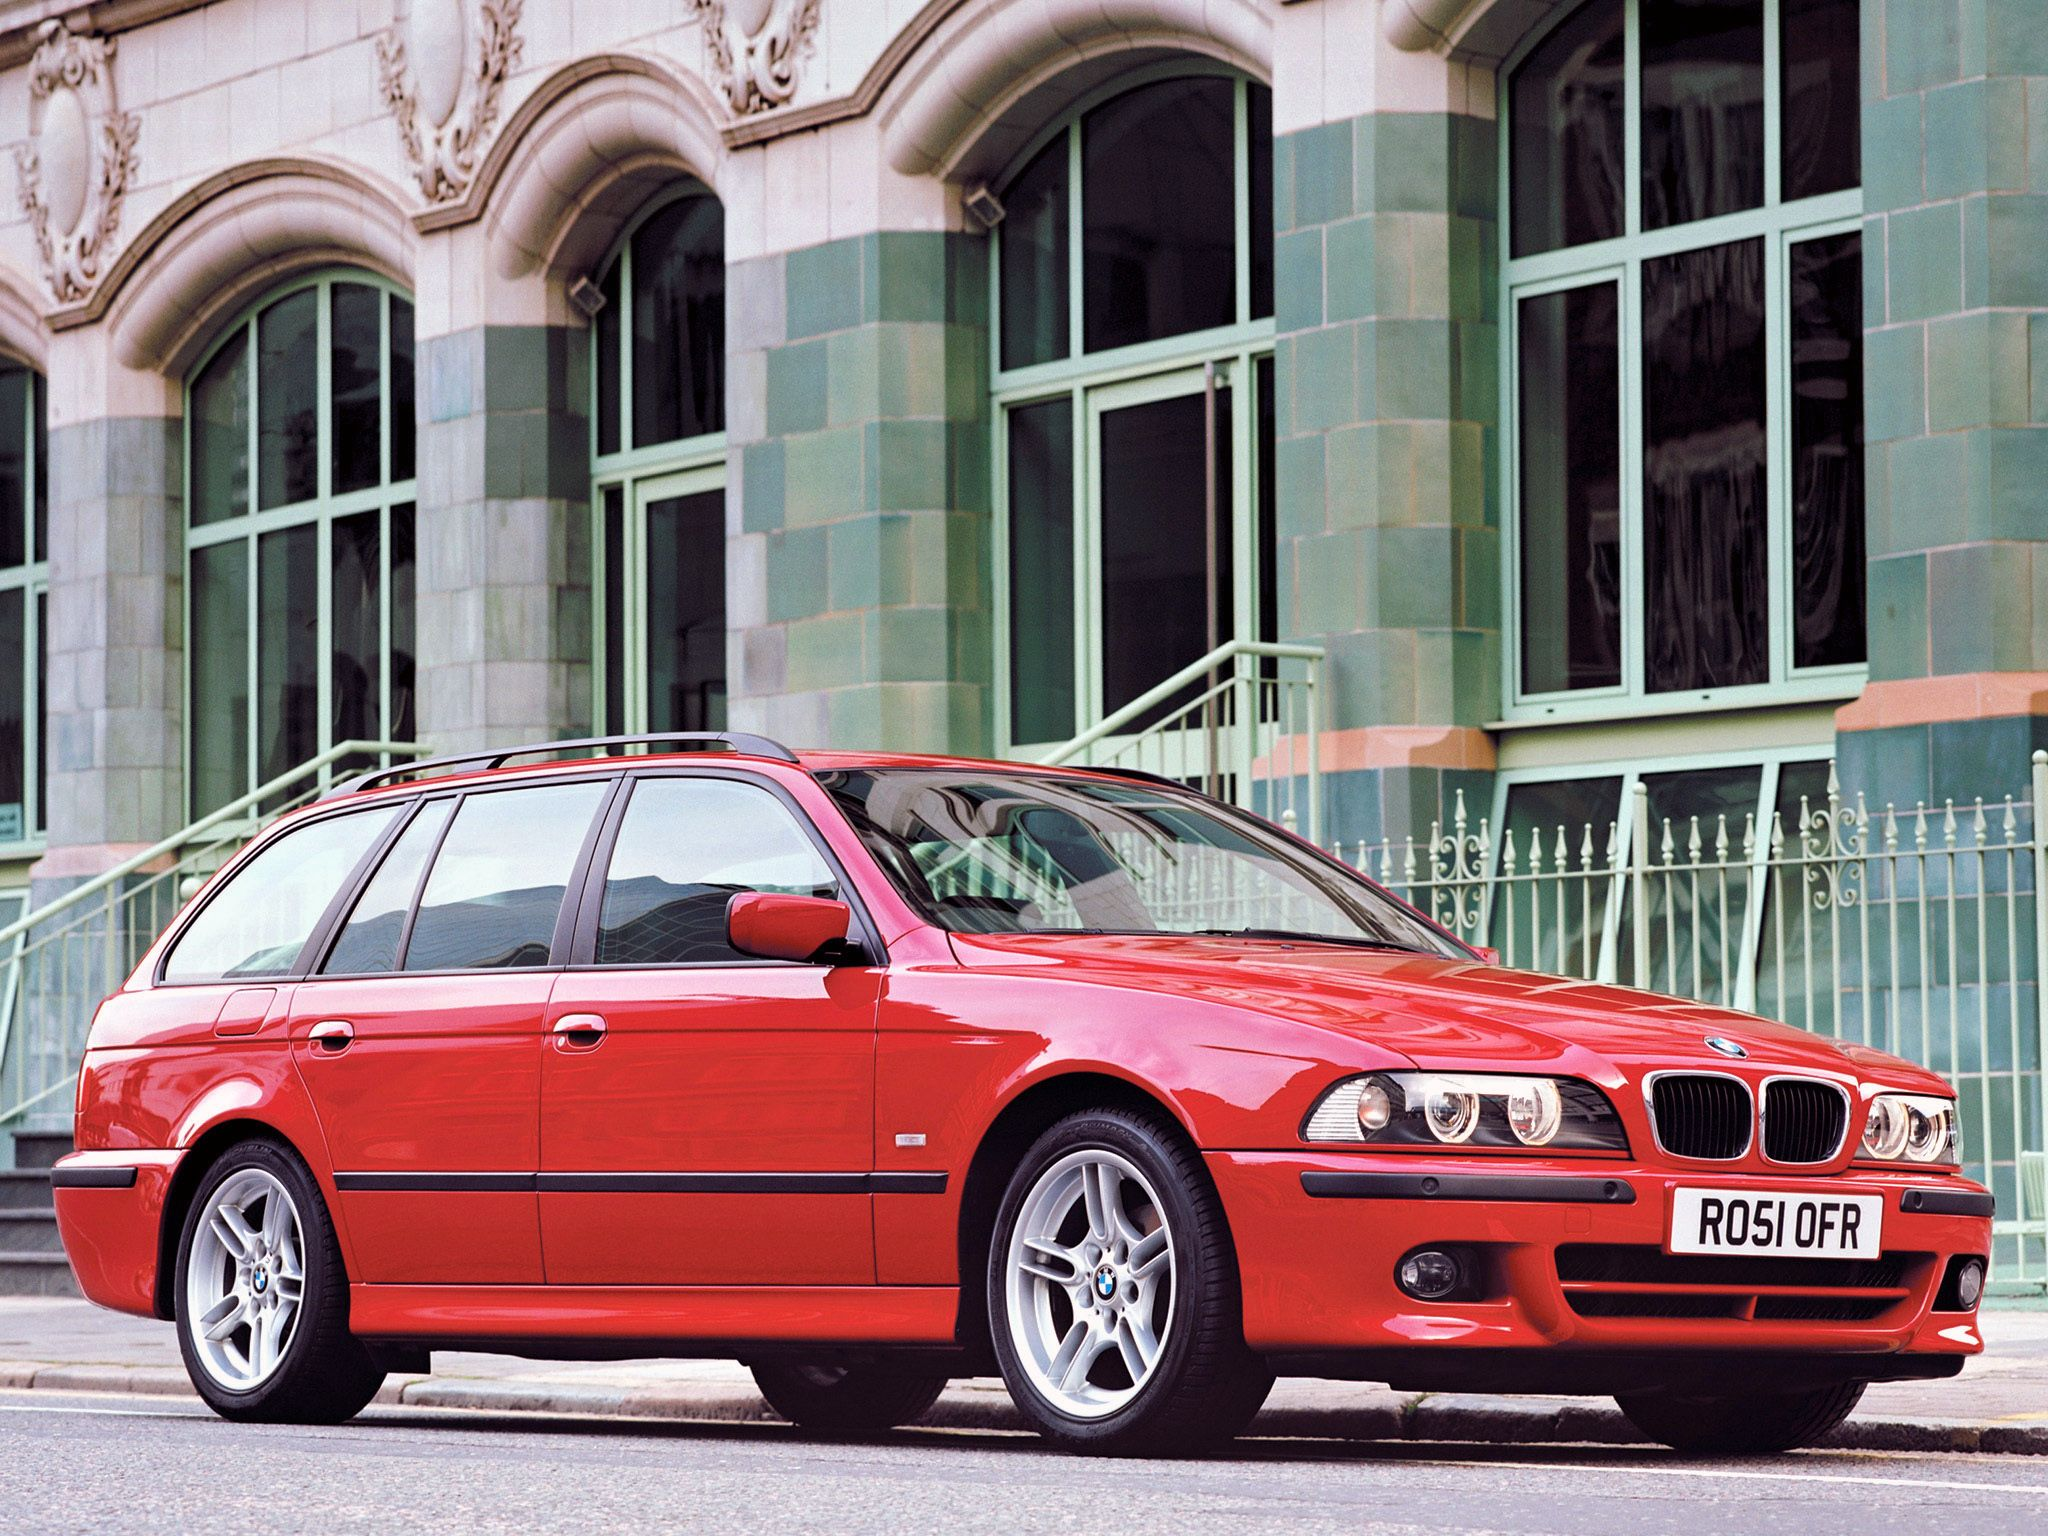 2002 Bmw E39 525i Touring With Images